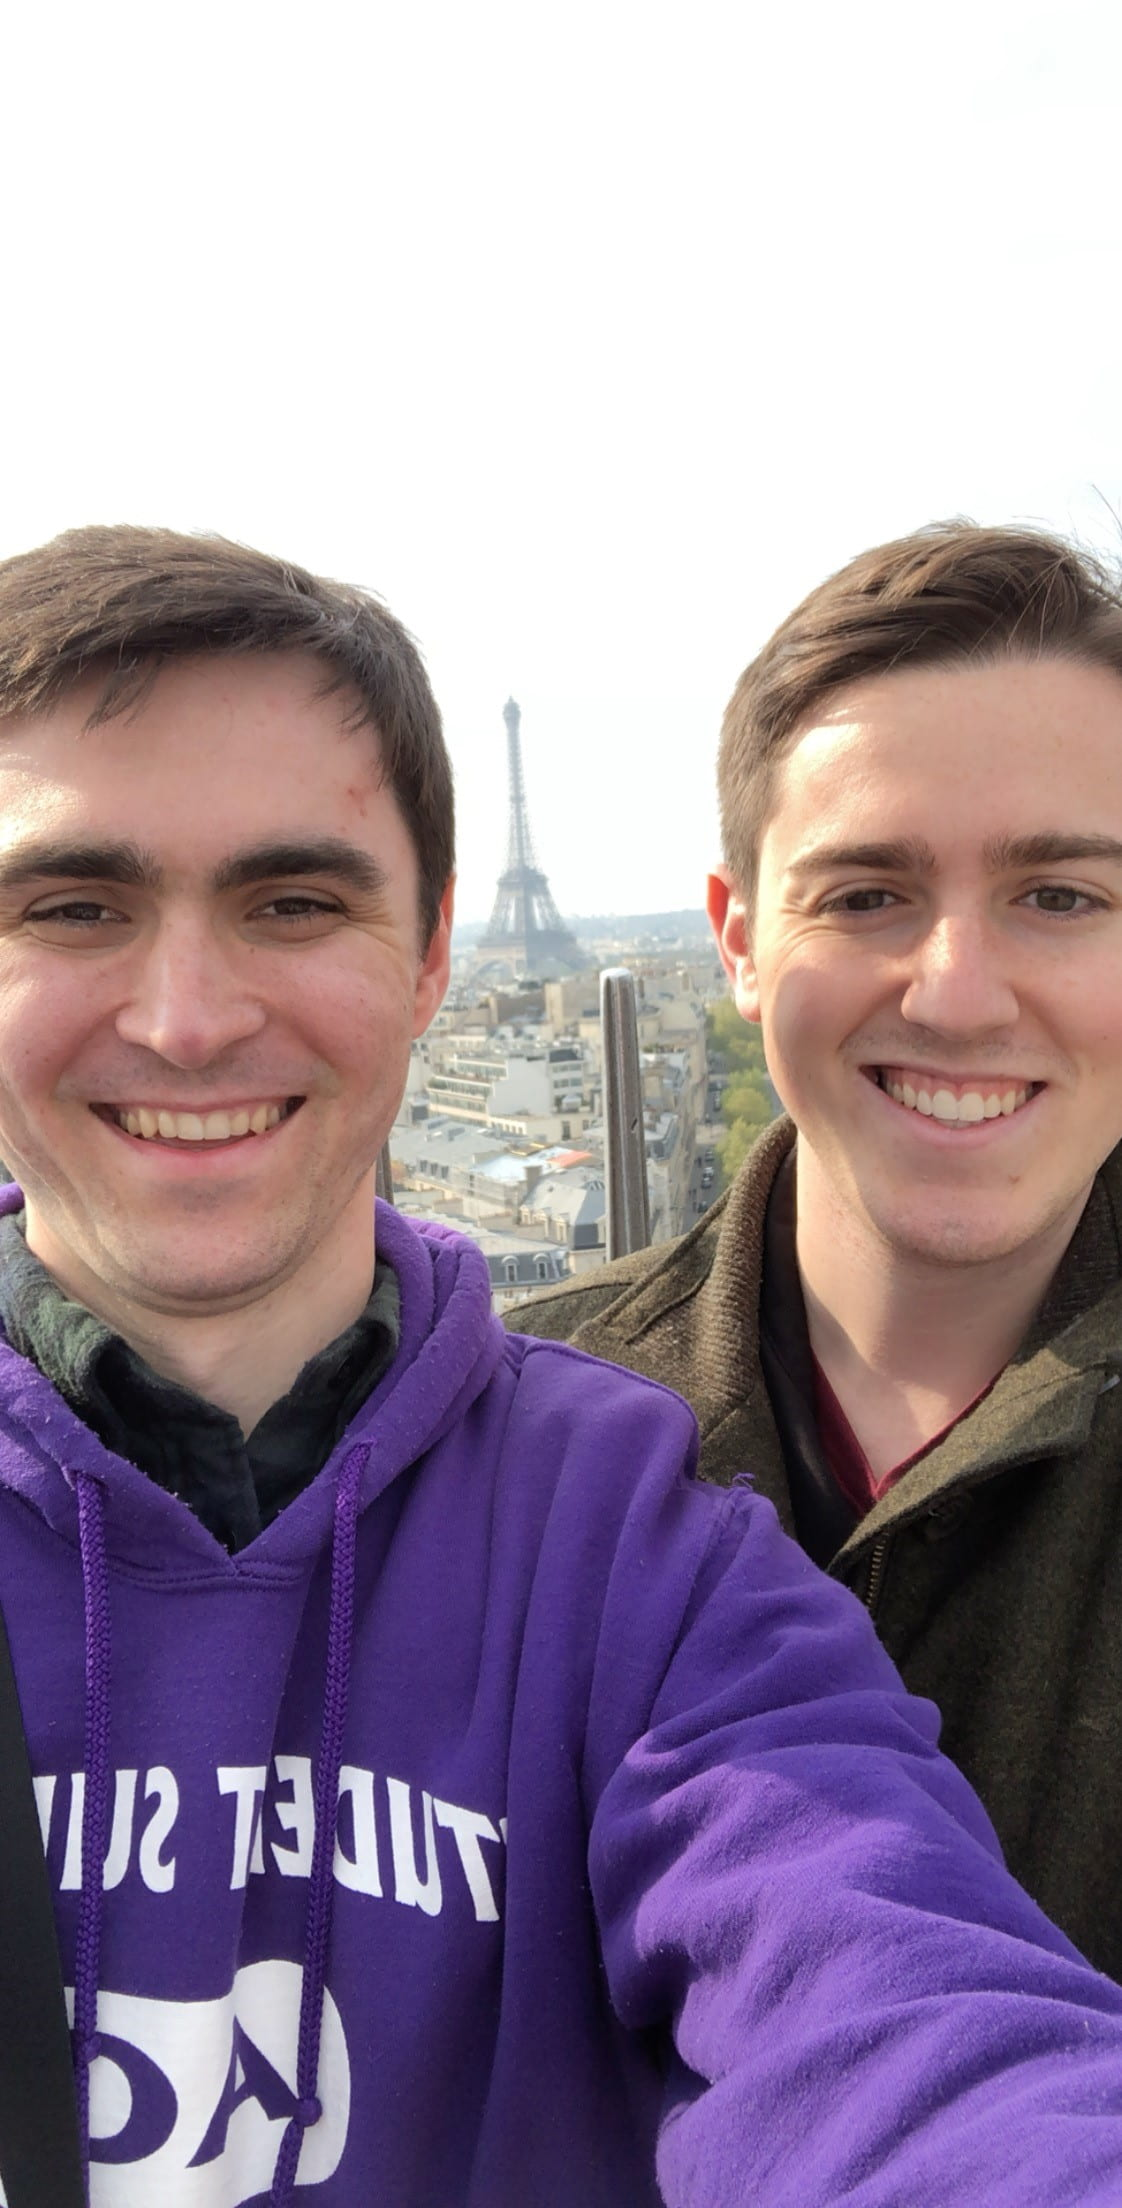 Selfie of Stuart and his partner with Eiffel Tower in the distance